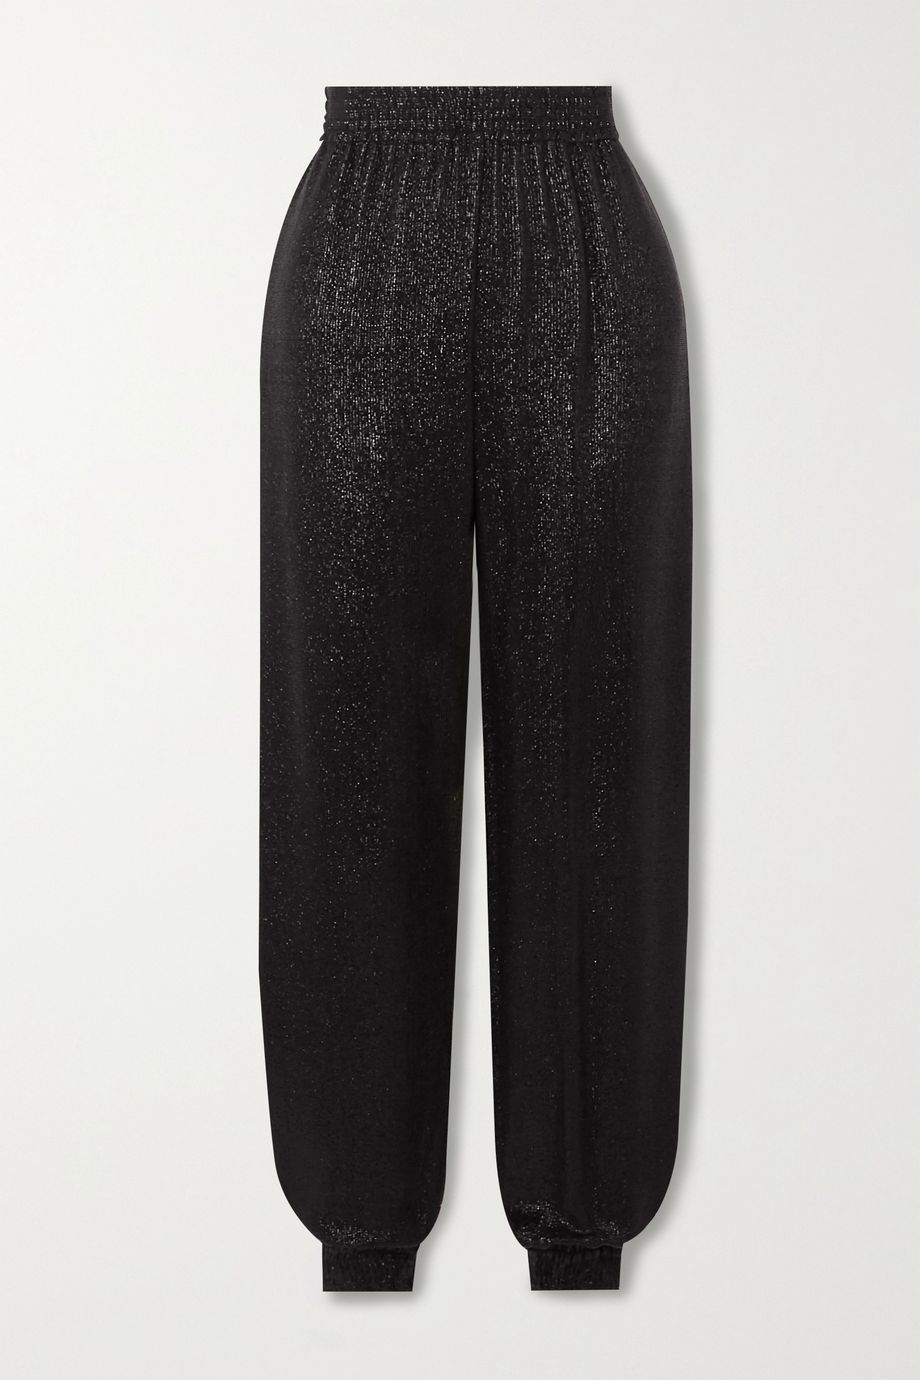 SAINT LAURENT Metallic knitted track pants